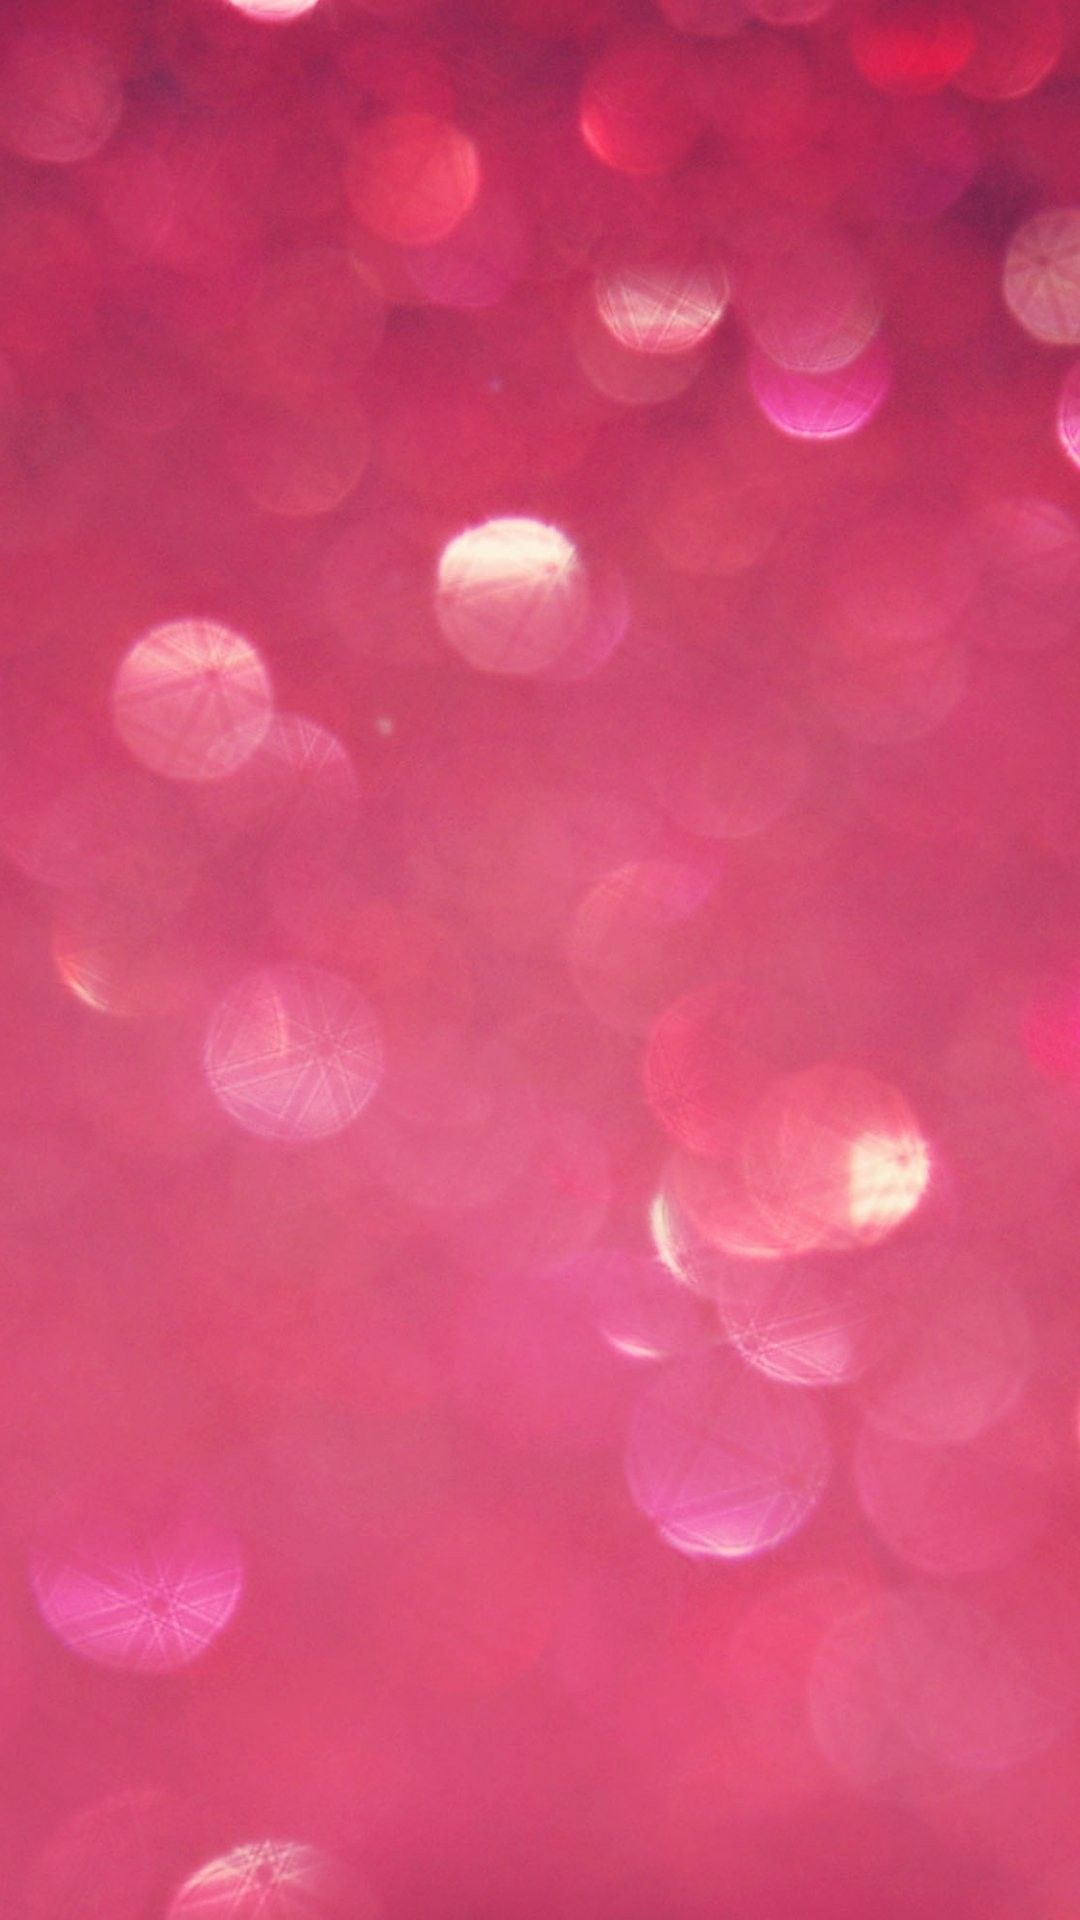 Pink Glitter iPhone 6 Plus Wallpaper Abstract iPhone 6 Plus